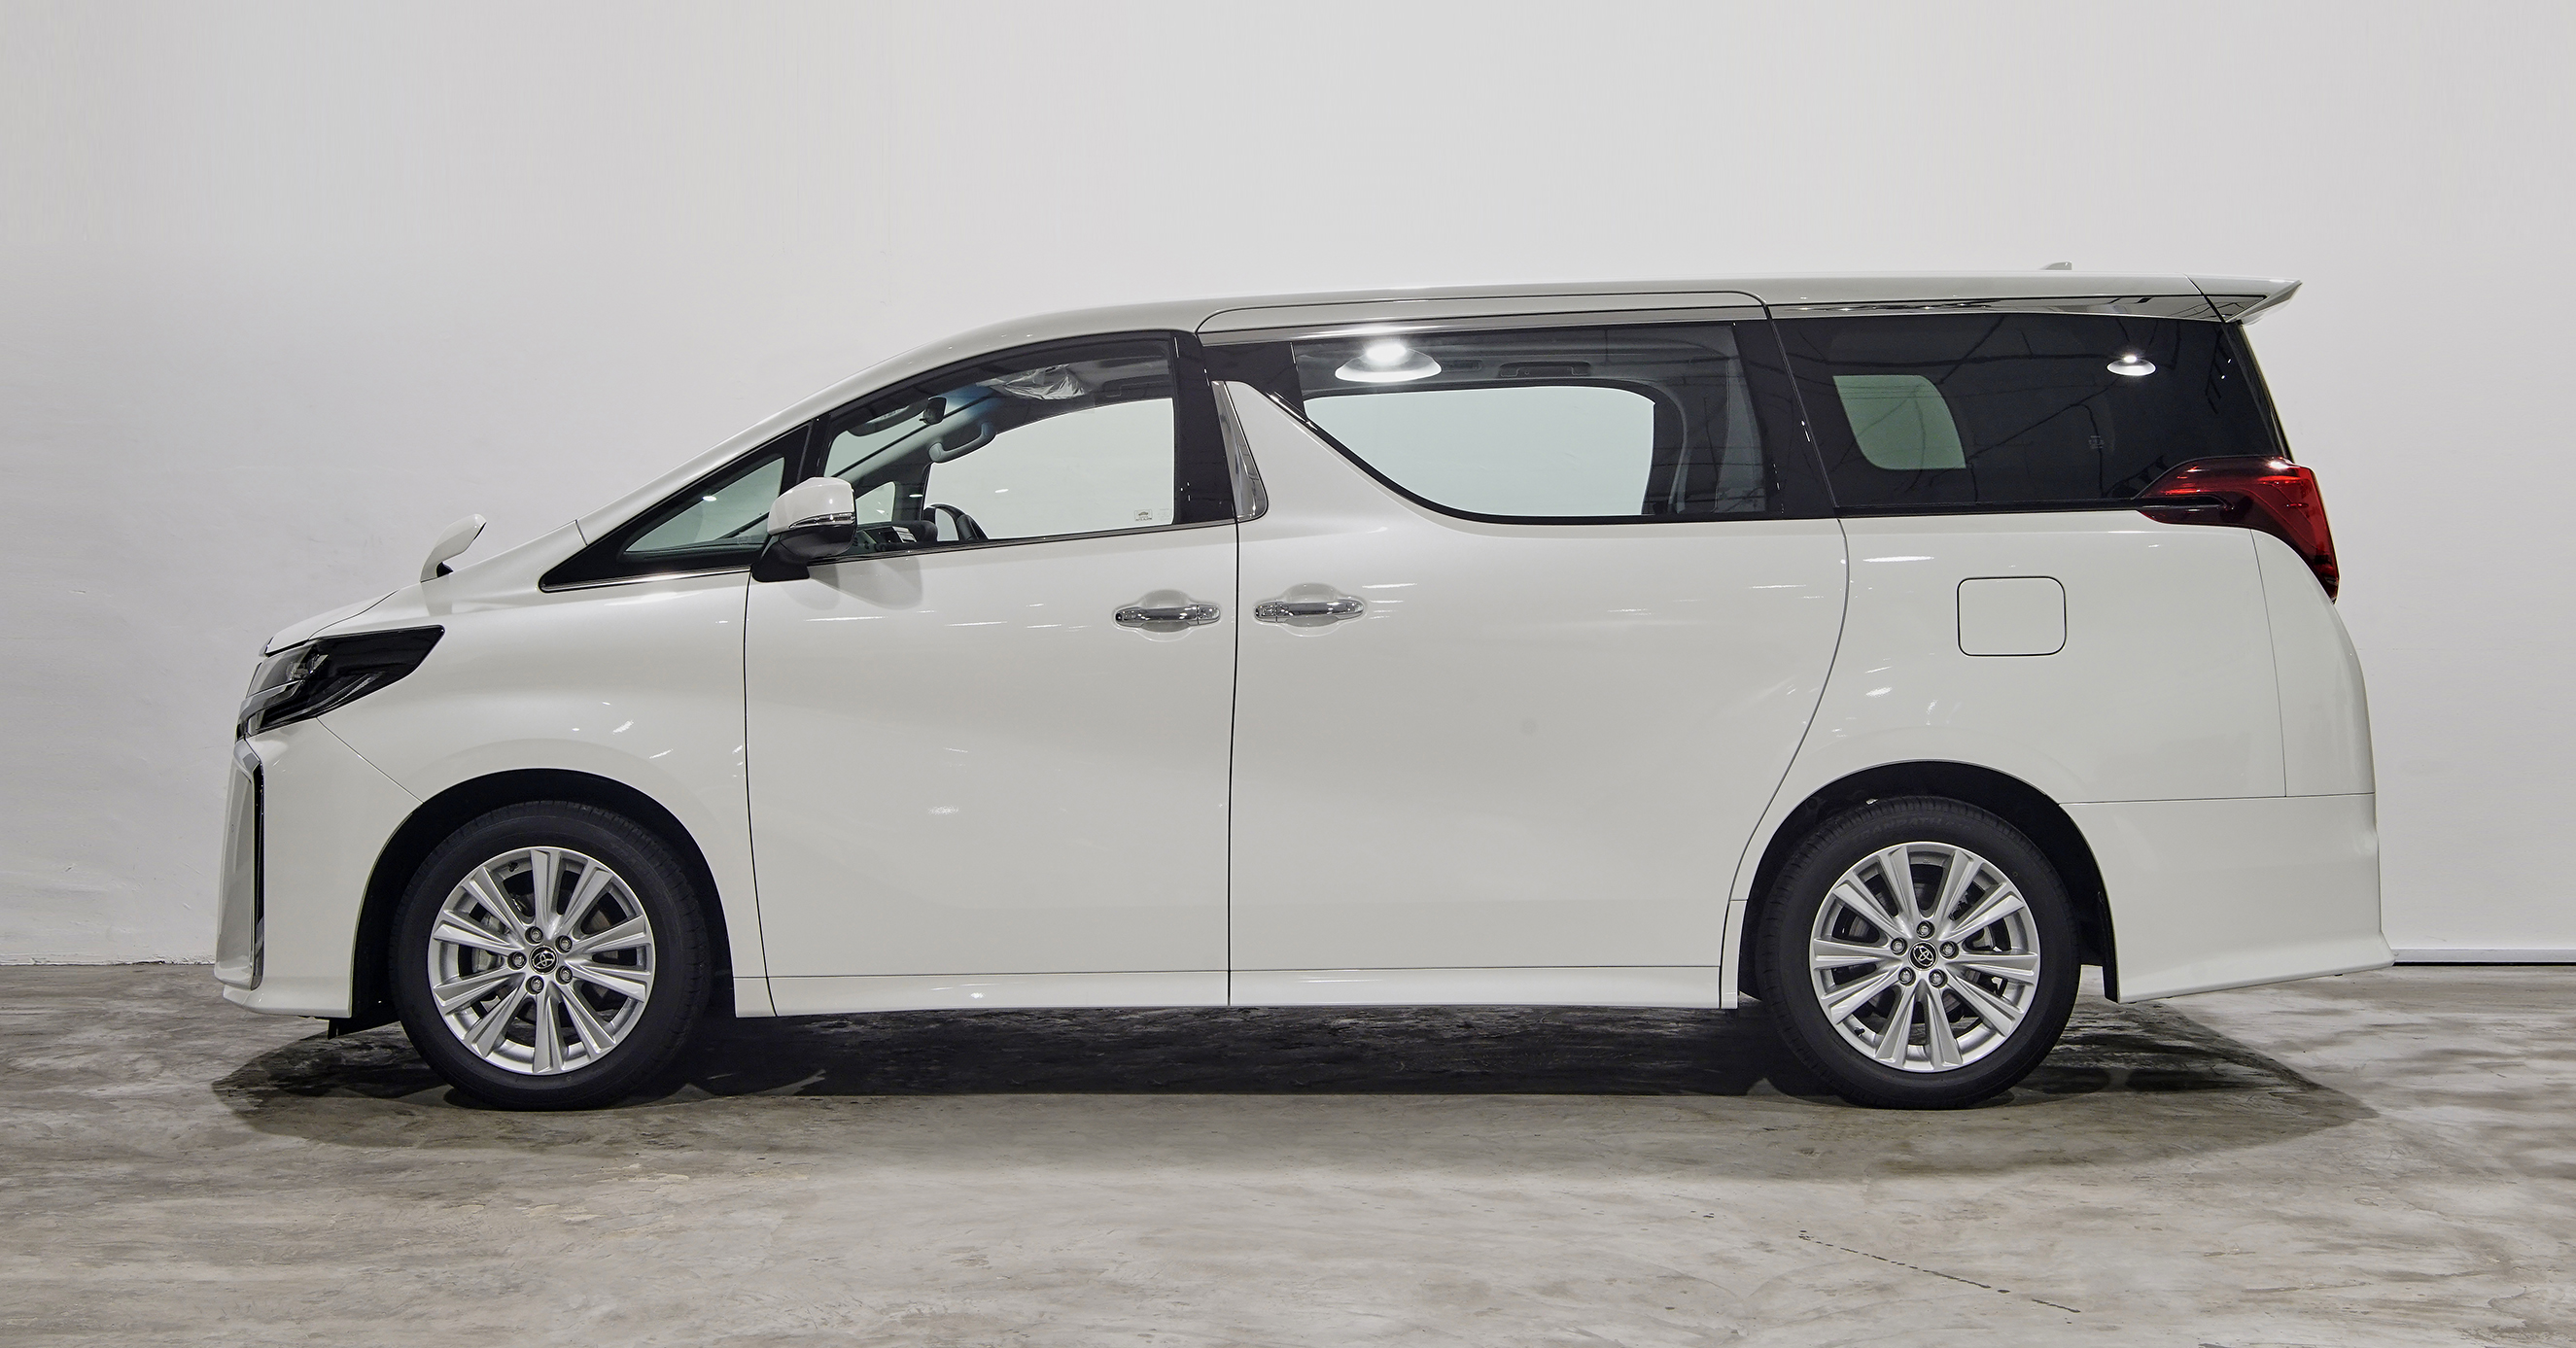 The door to unprecedented, calmness-filled cruising has opened. The Alphard offers dignified style charged with personality, and a spacious interior infused with quality and glamour. Every aspect of the Alphard has been crafted to provide pride and delight.